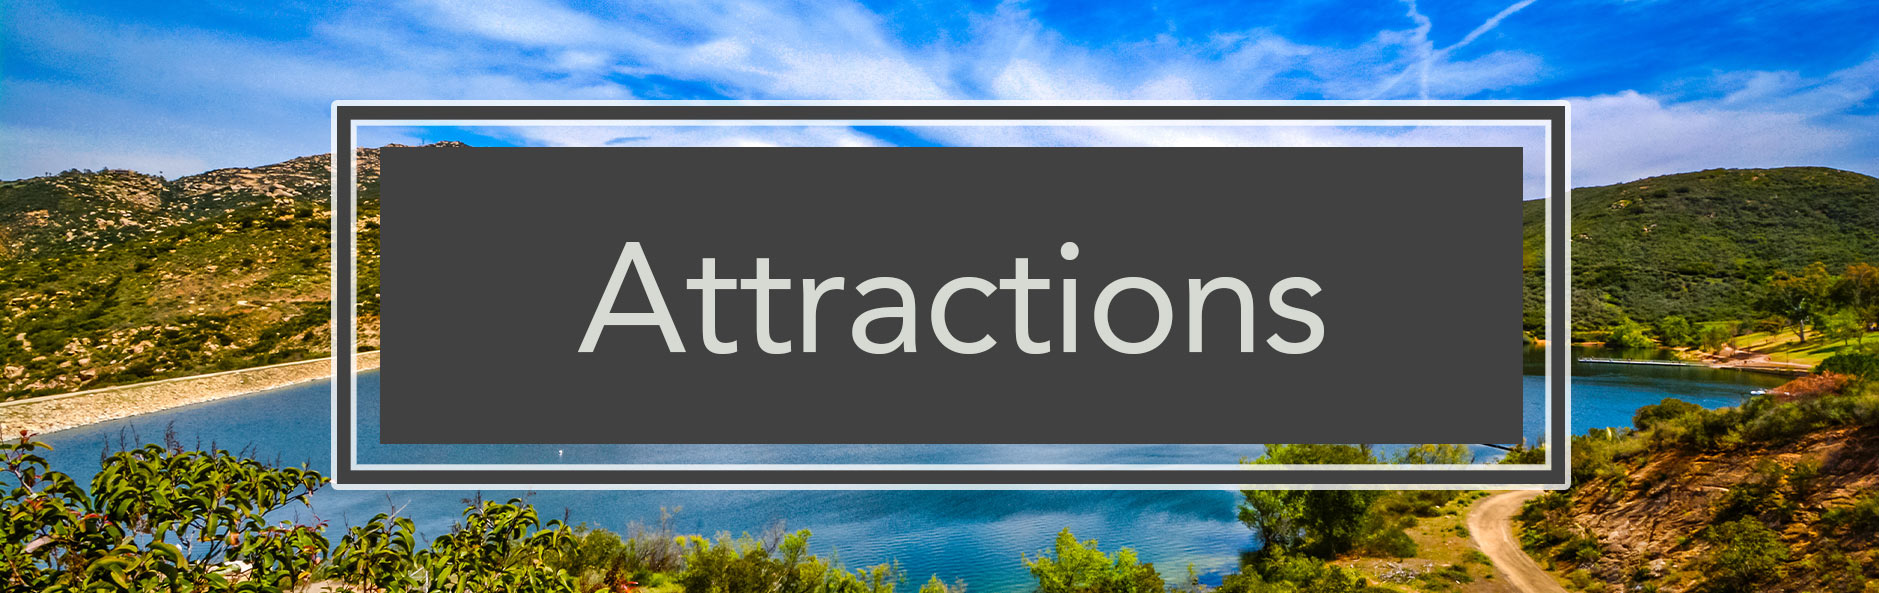 Attractions near Toyota of Poway